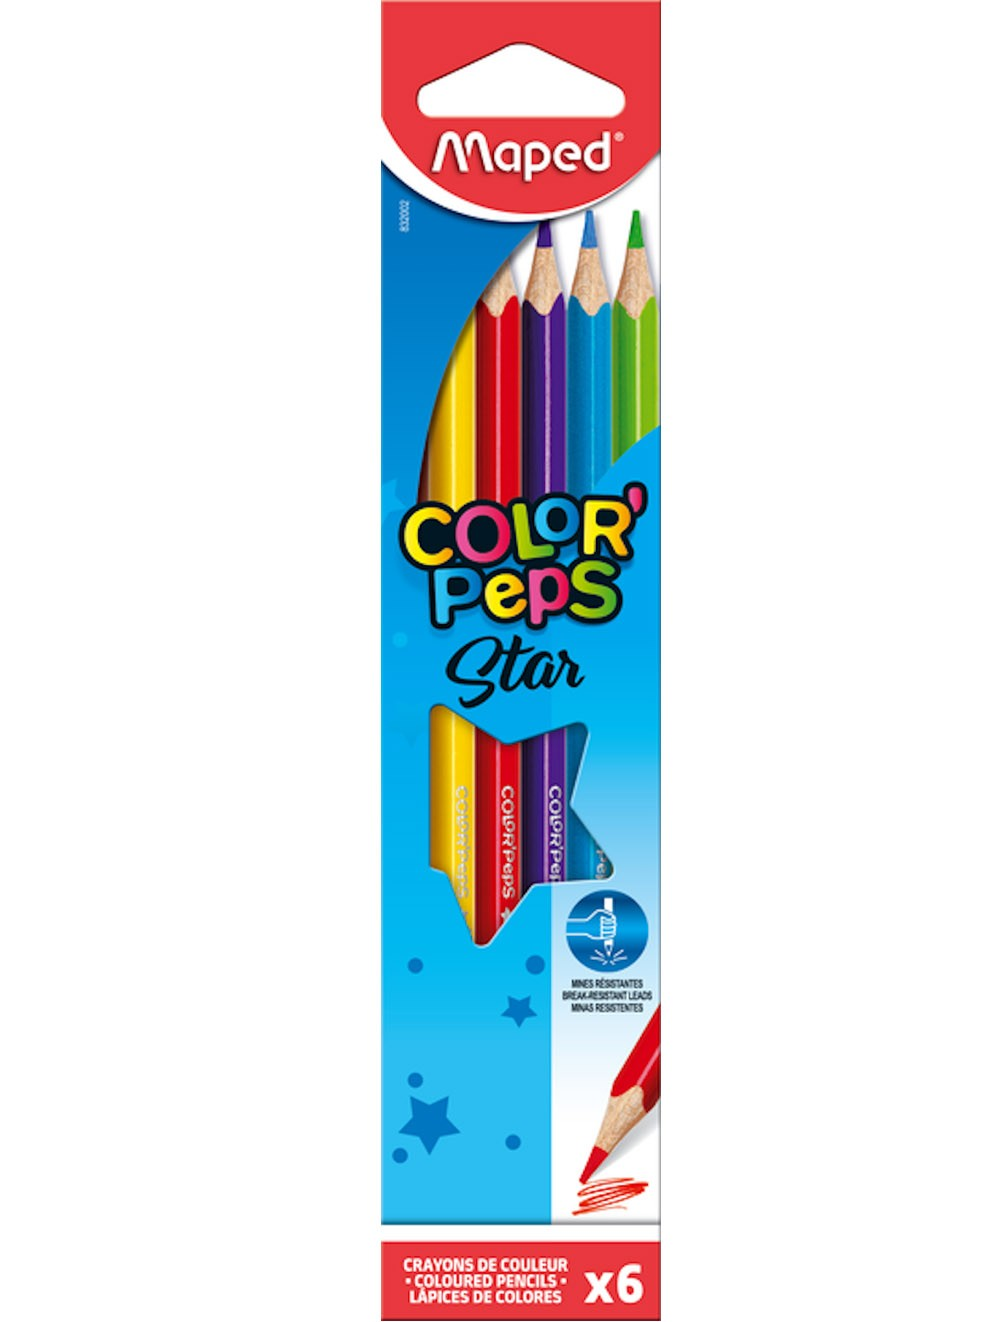 MAPED COLOR PEP'S STAR - BOX OF 6 COLOUR PENCILS